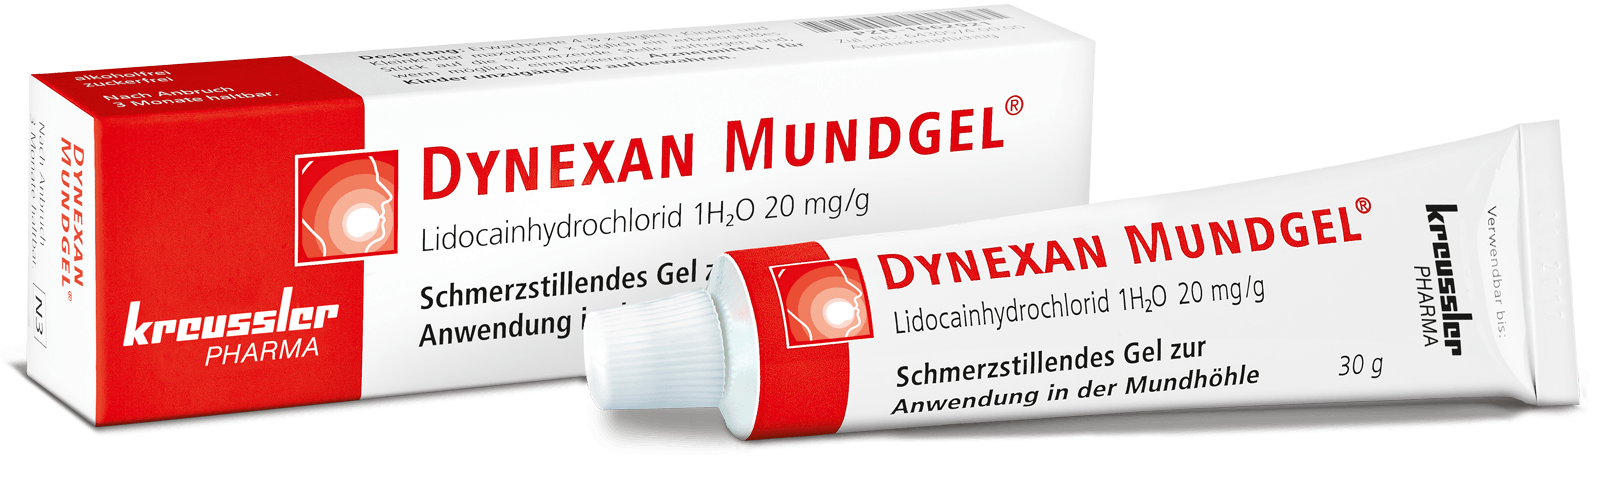 Kreussler Pharma - DYNEXAN MOUTH GEL - Tube 10g